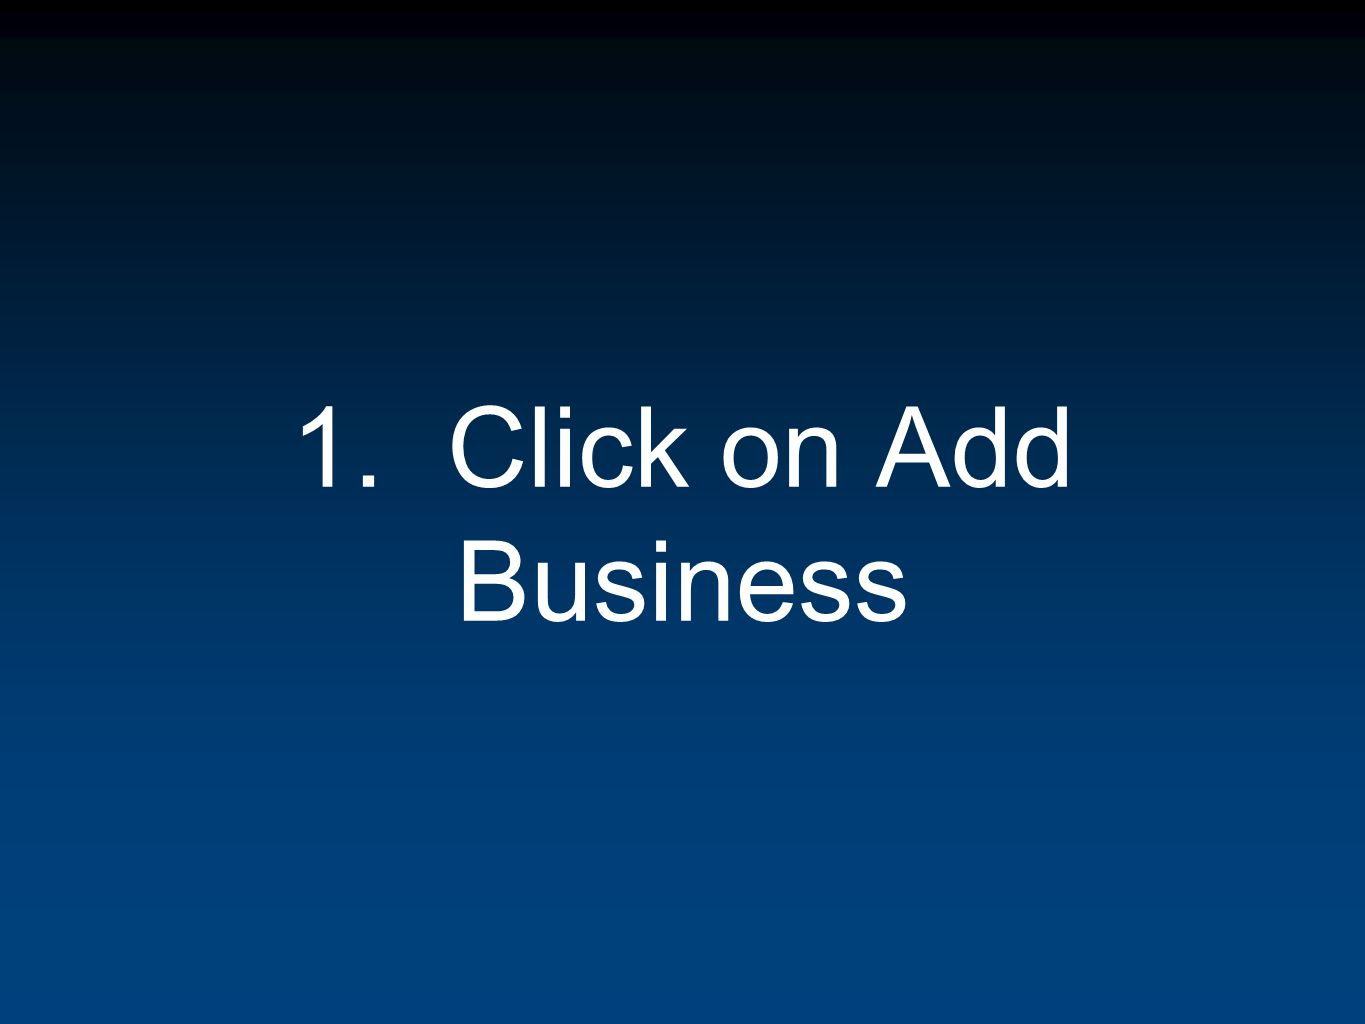 1. Click on Add Business